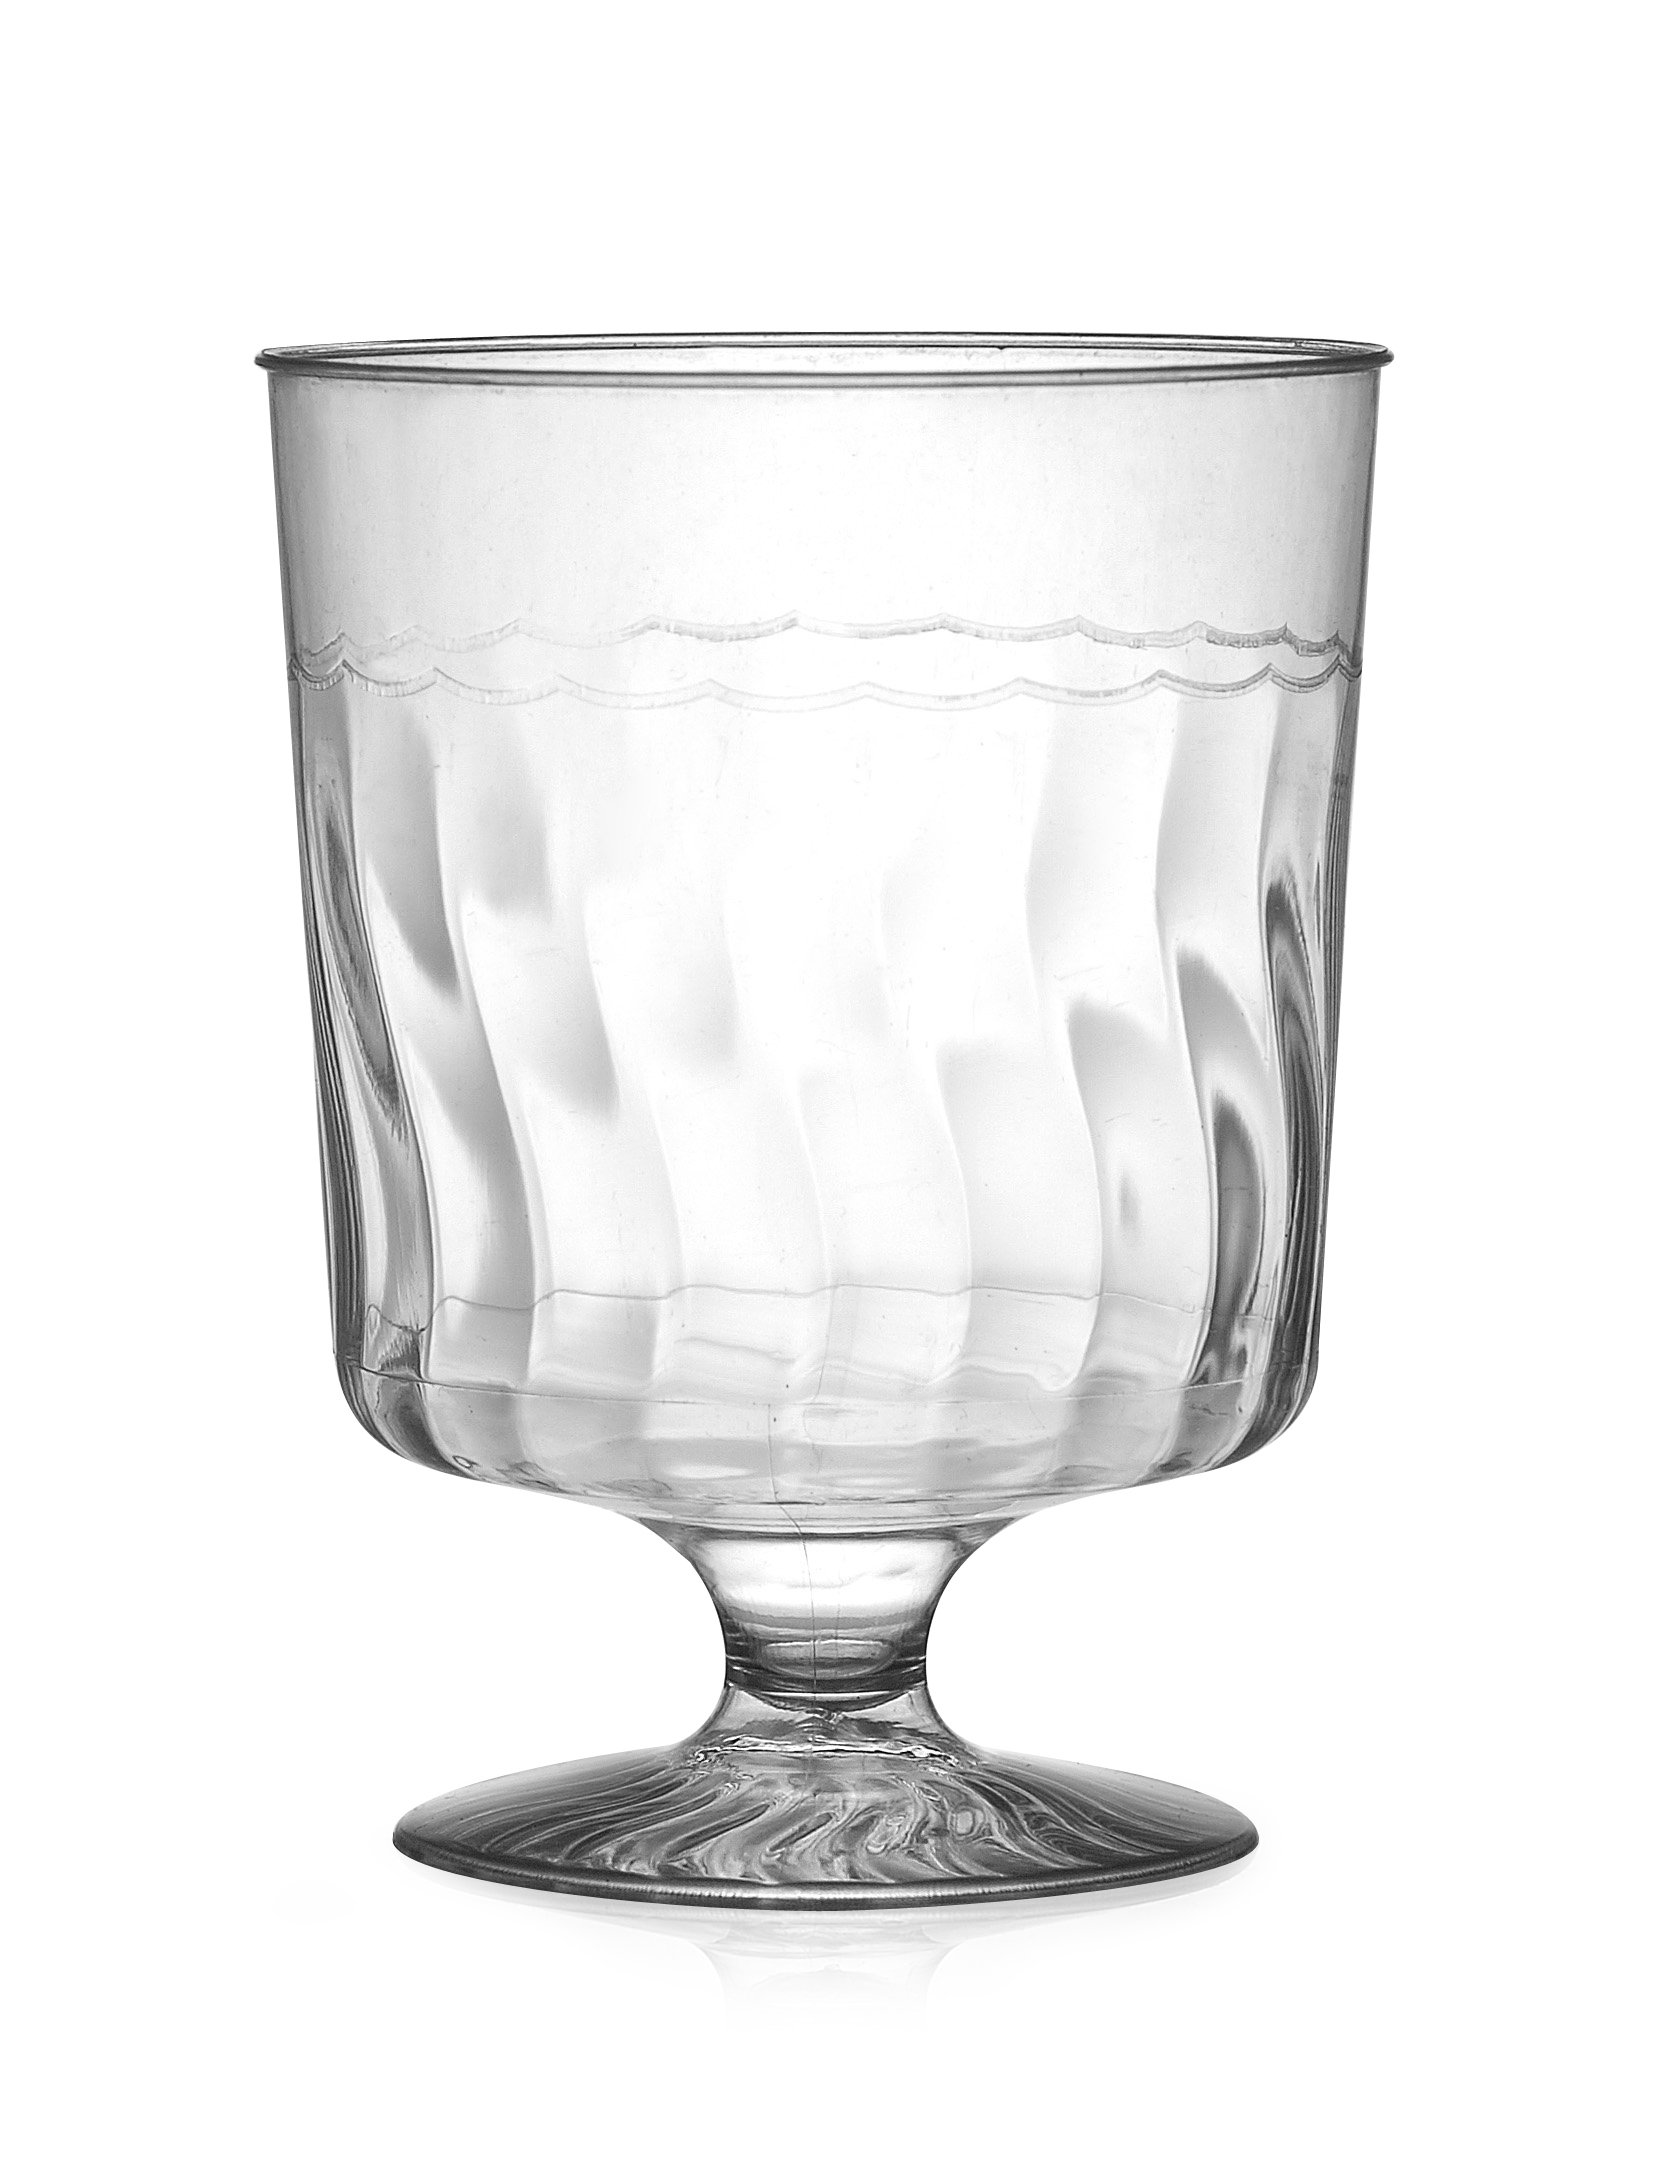 Fineline Settings Flairware Clear  5.5 oz. One Piece Wine Glass  240 Pieces by Flairware